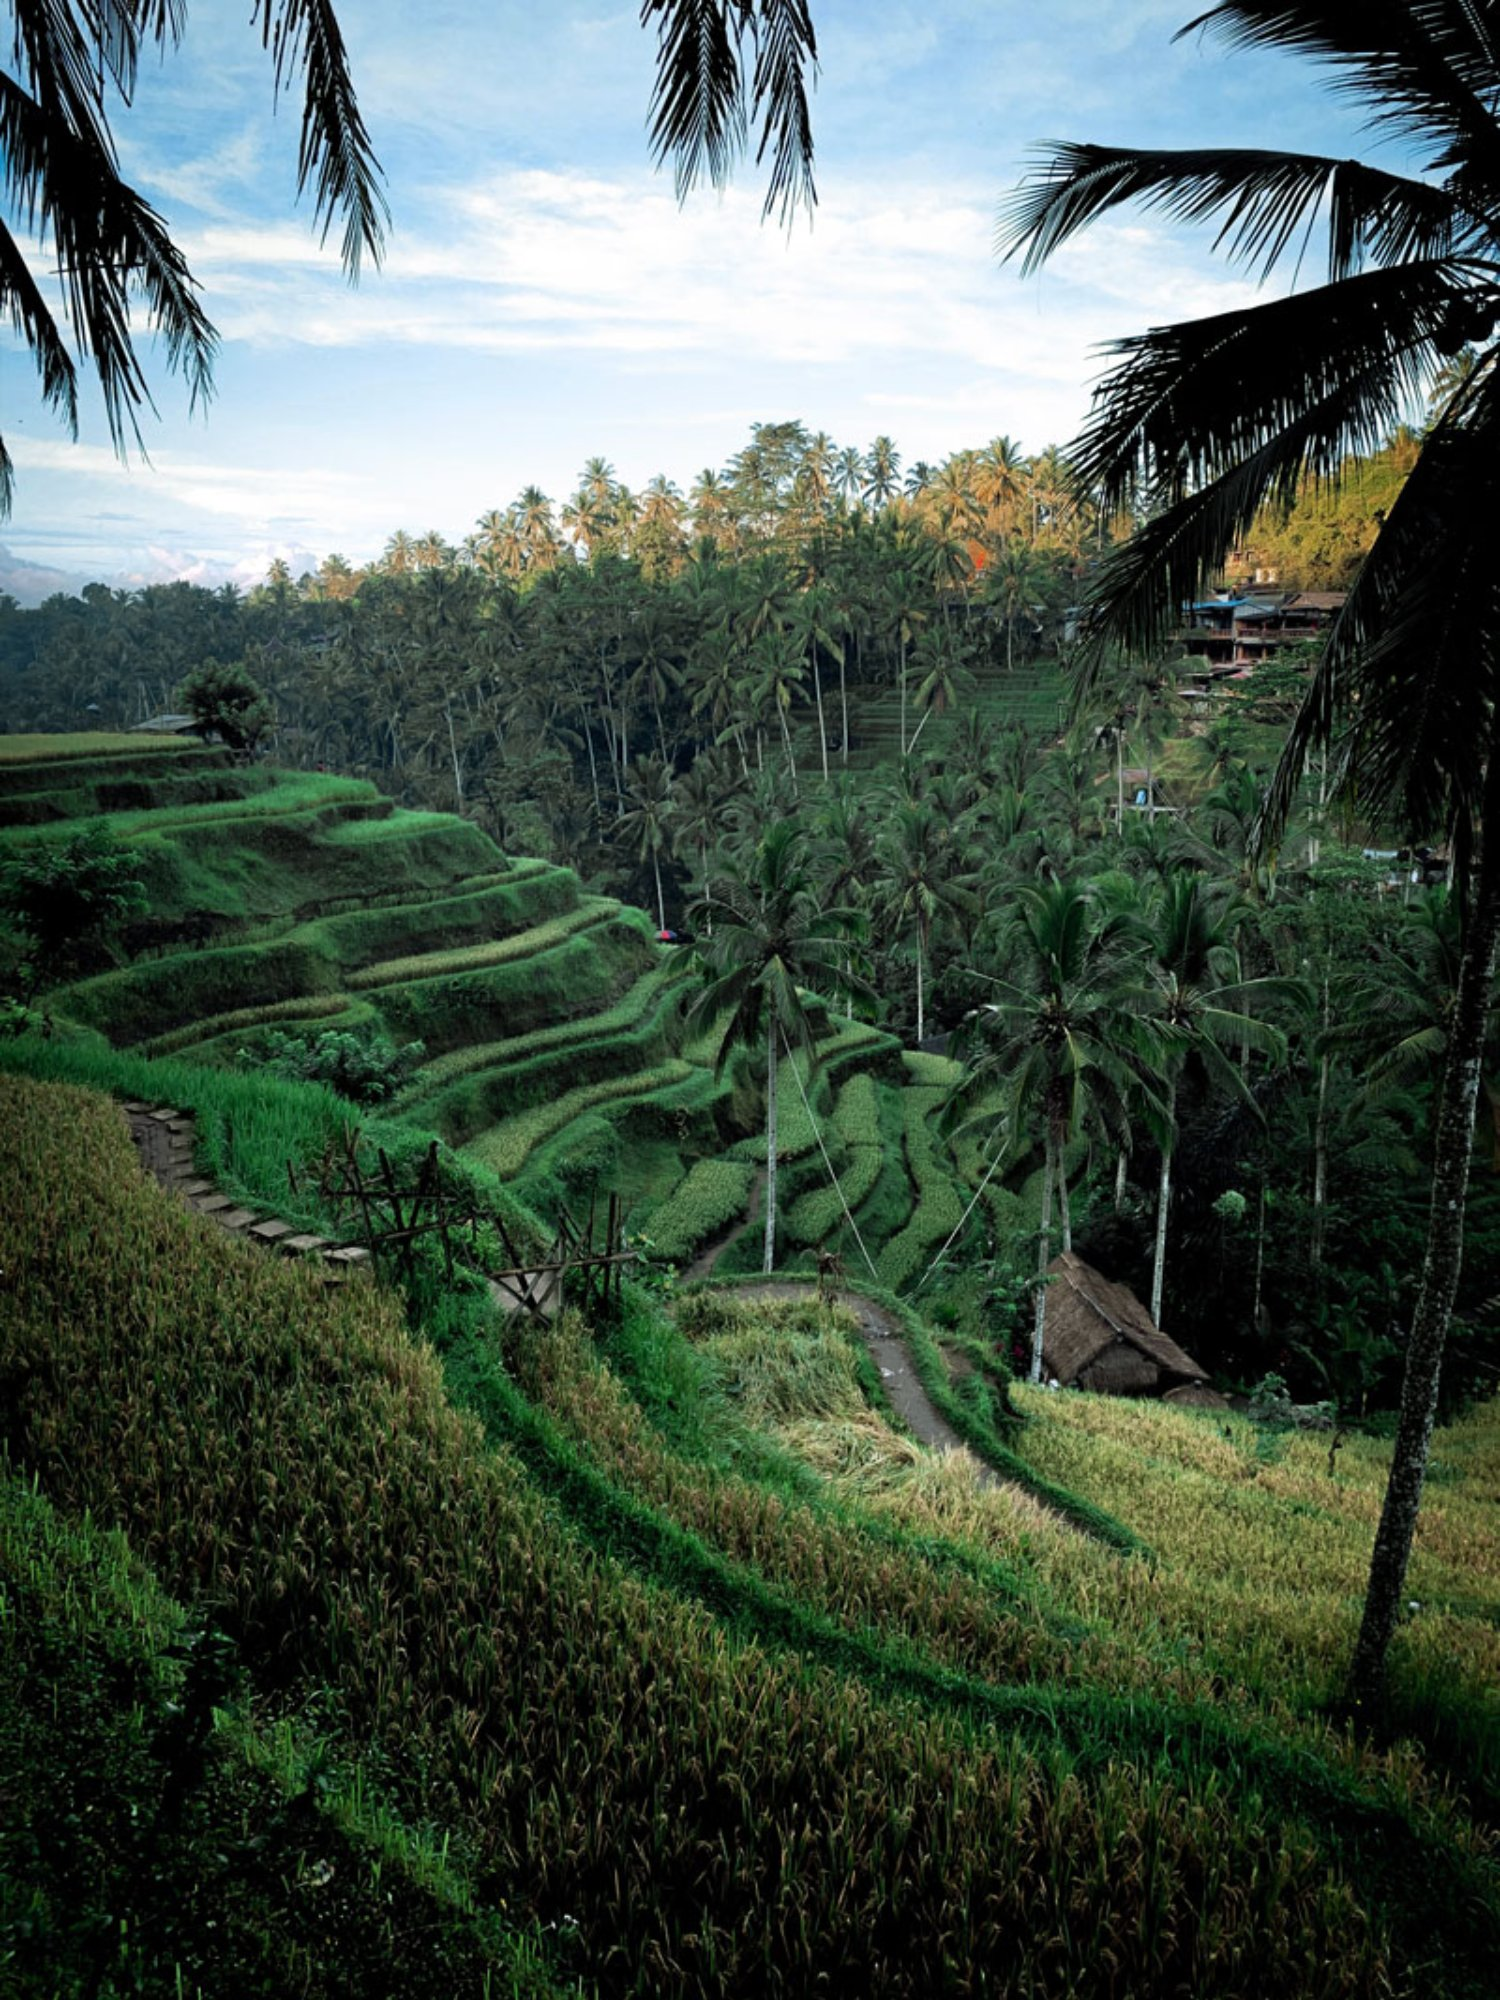 Tegalalang Rice Terrace and Swing